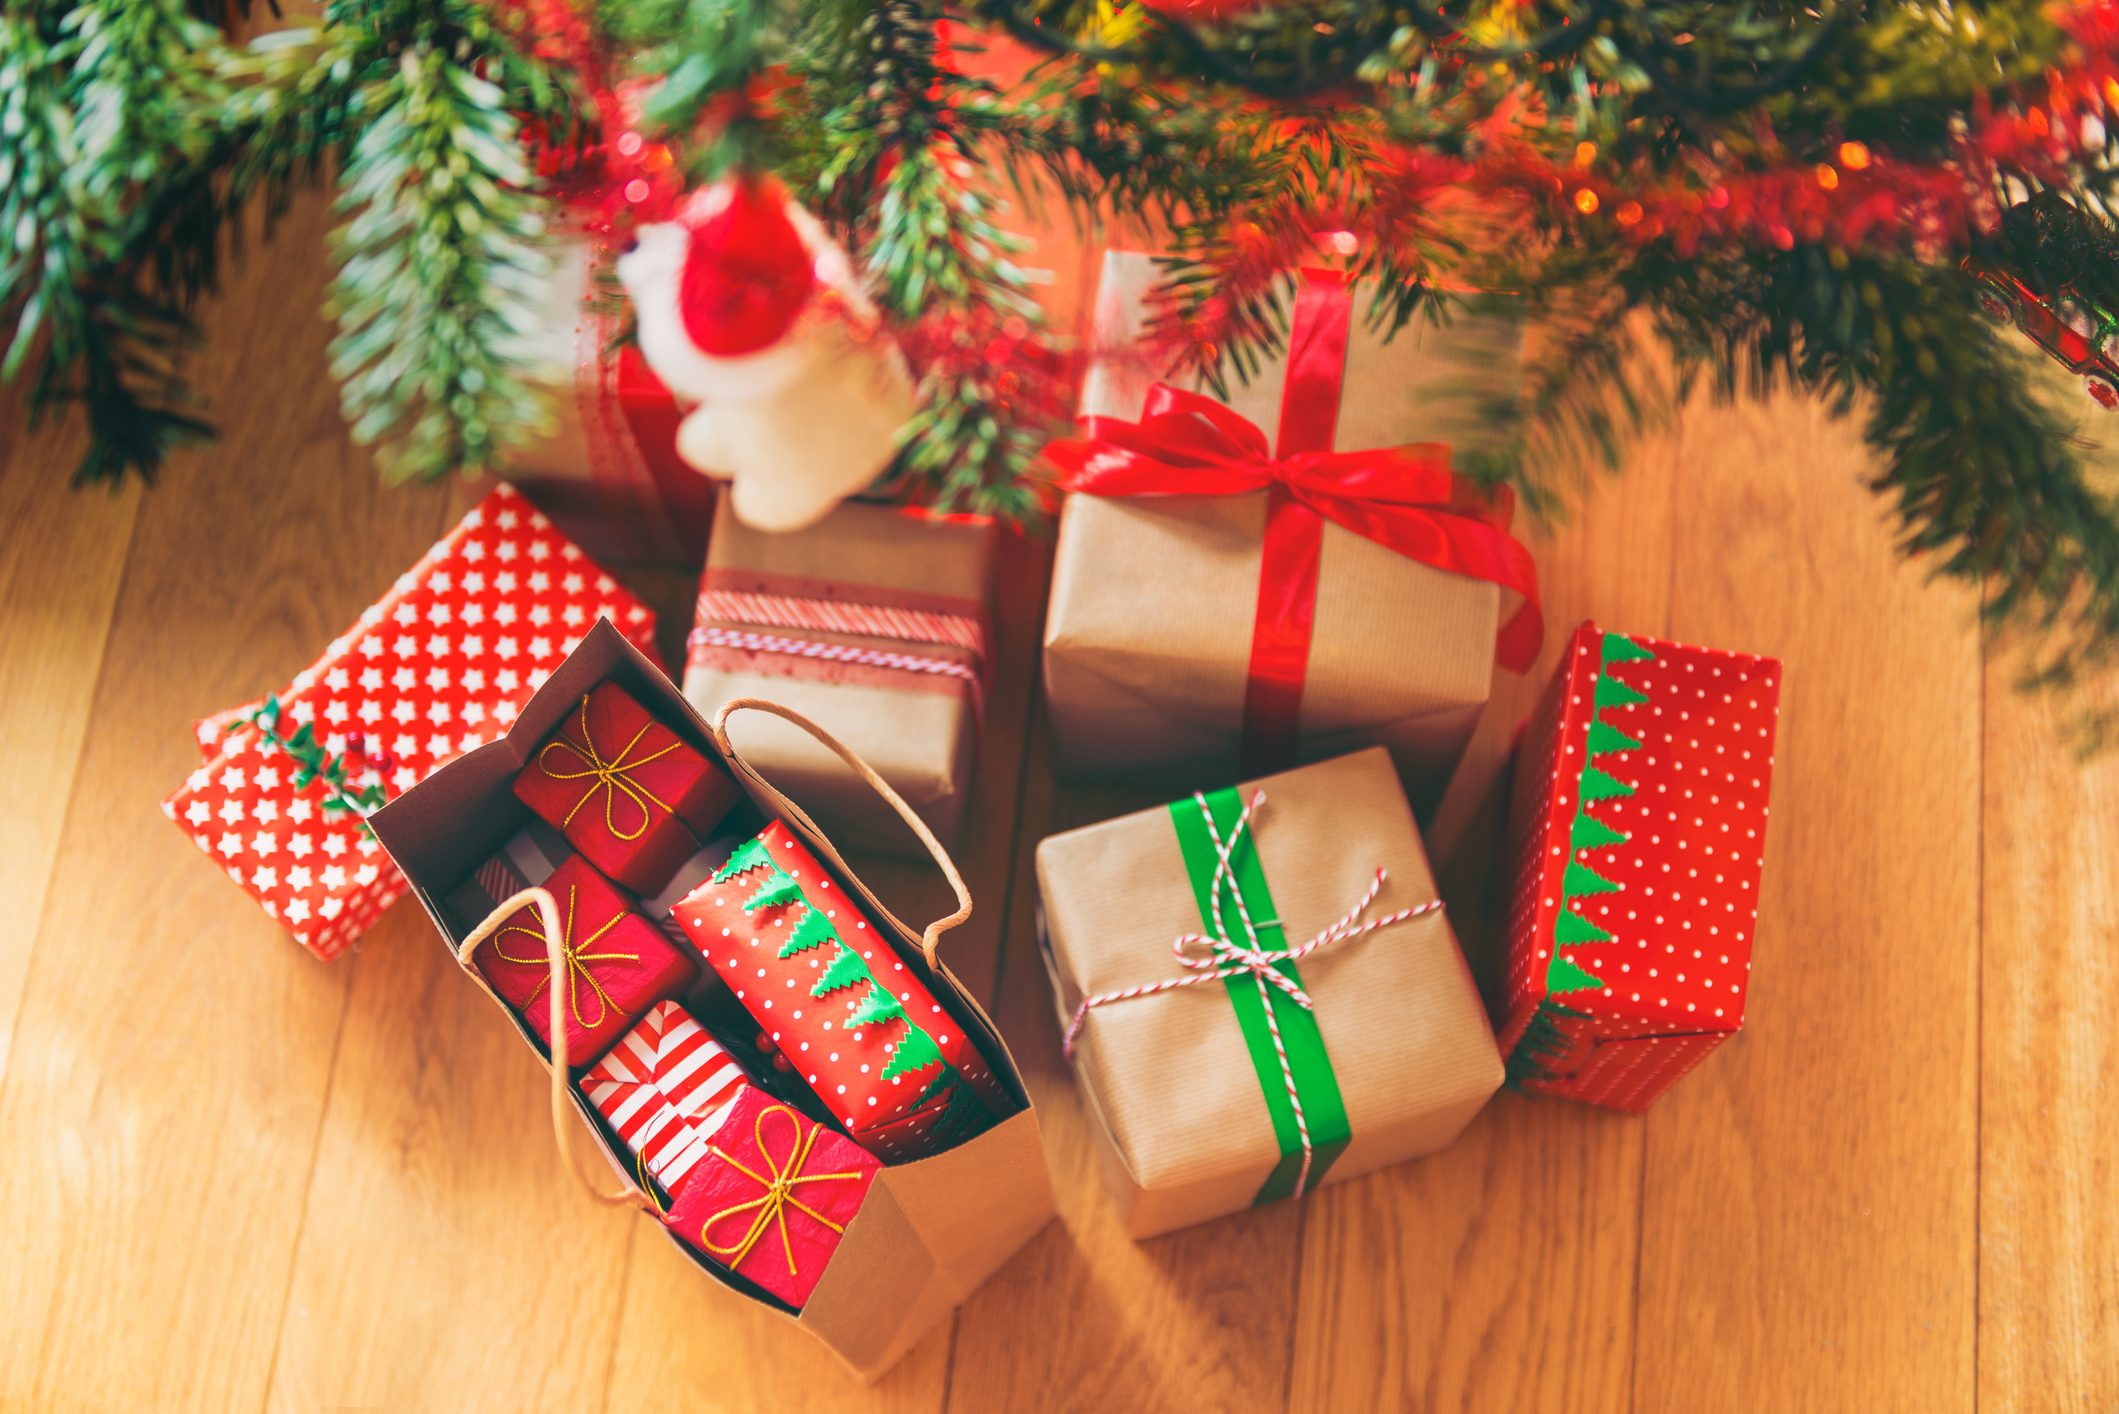 Christmas Presents under Christmas Tree